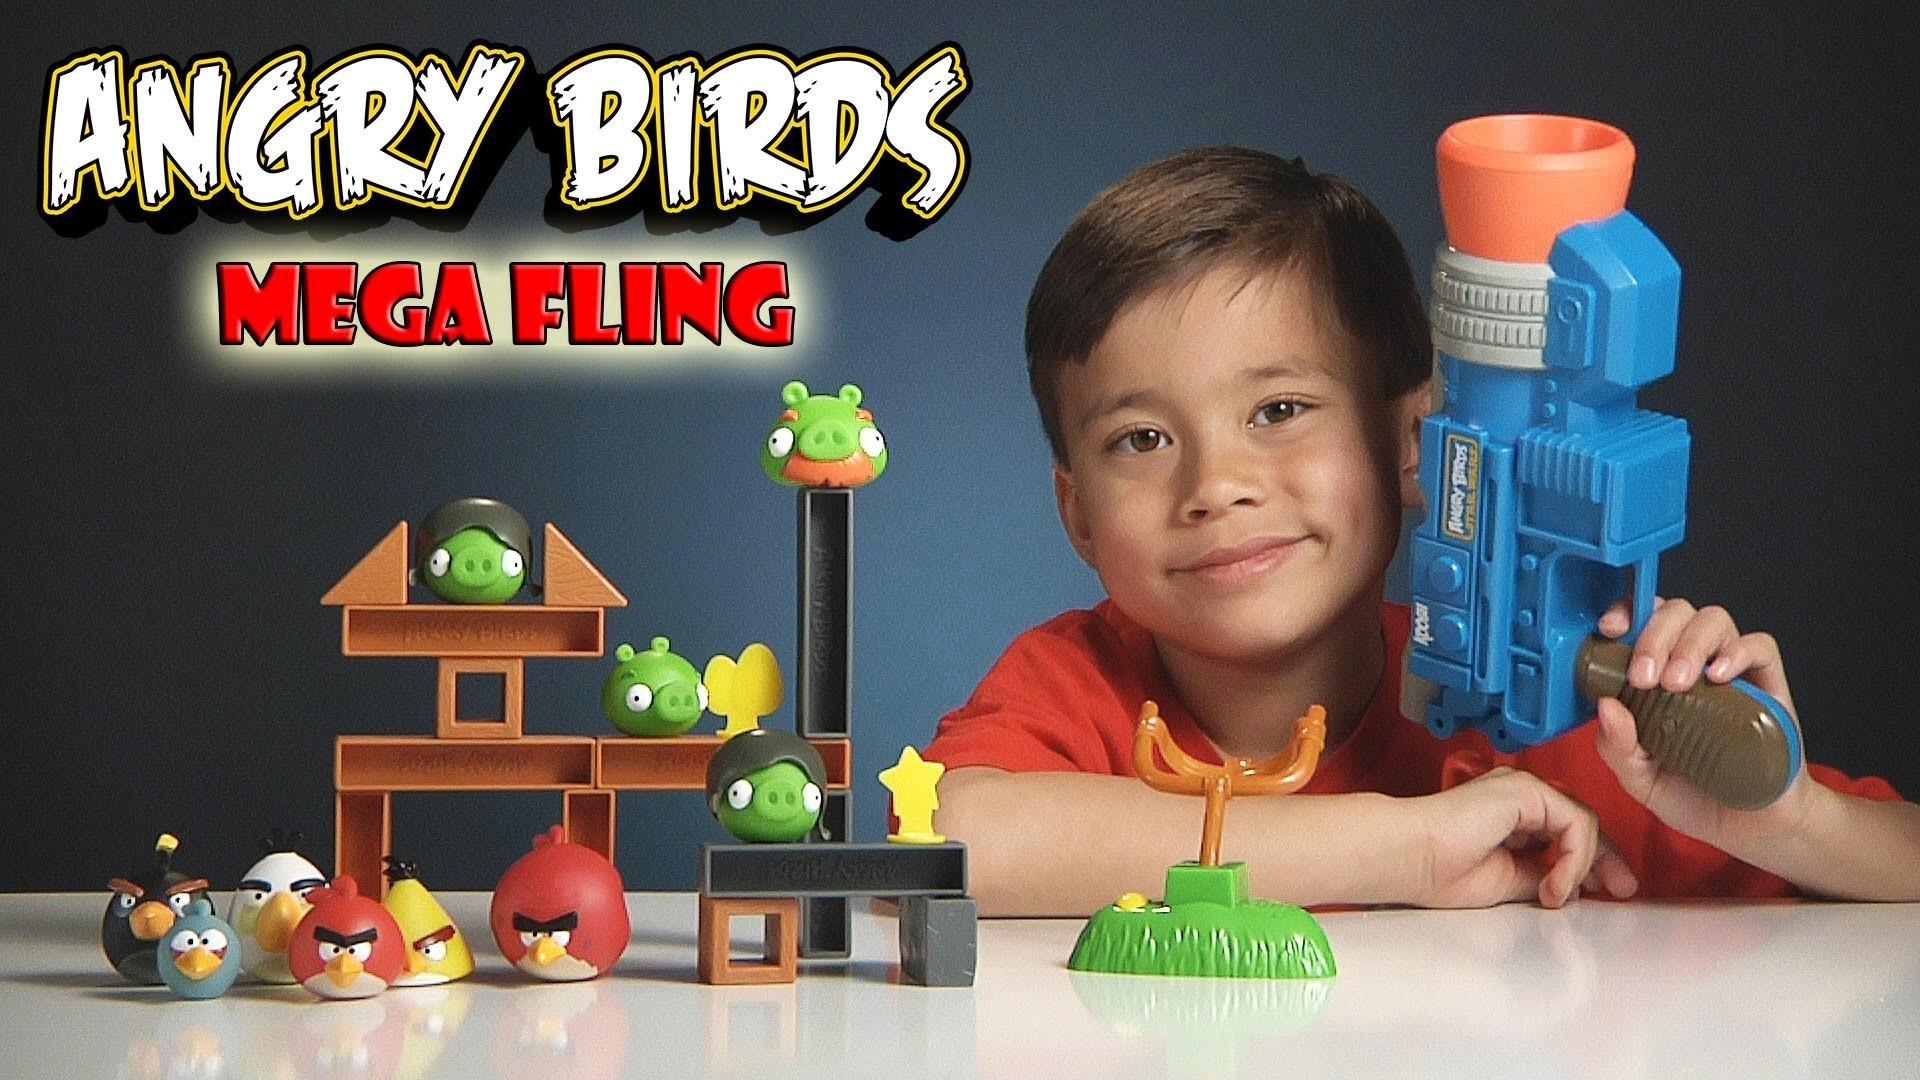 Angry Birds Mega Fling Game Epic Launcher Fail